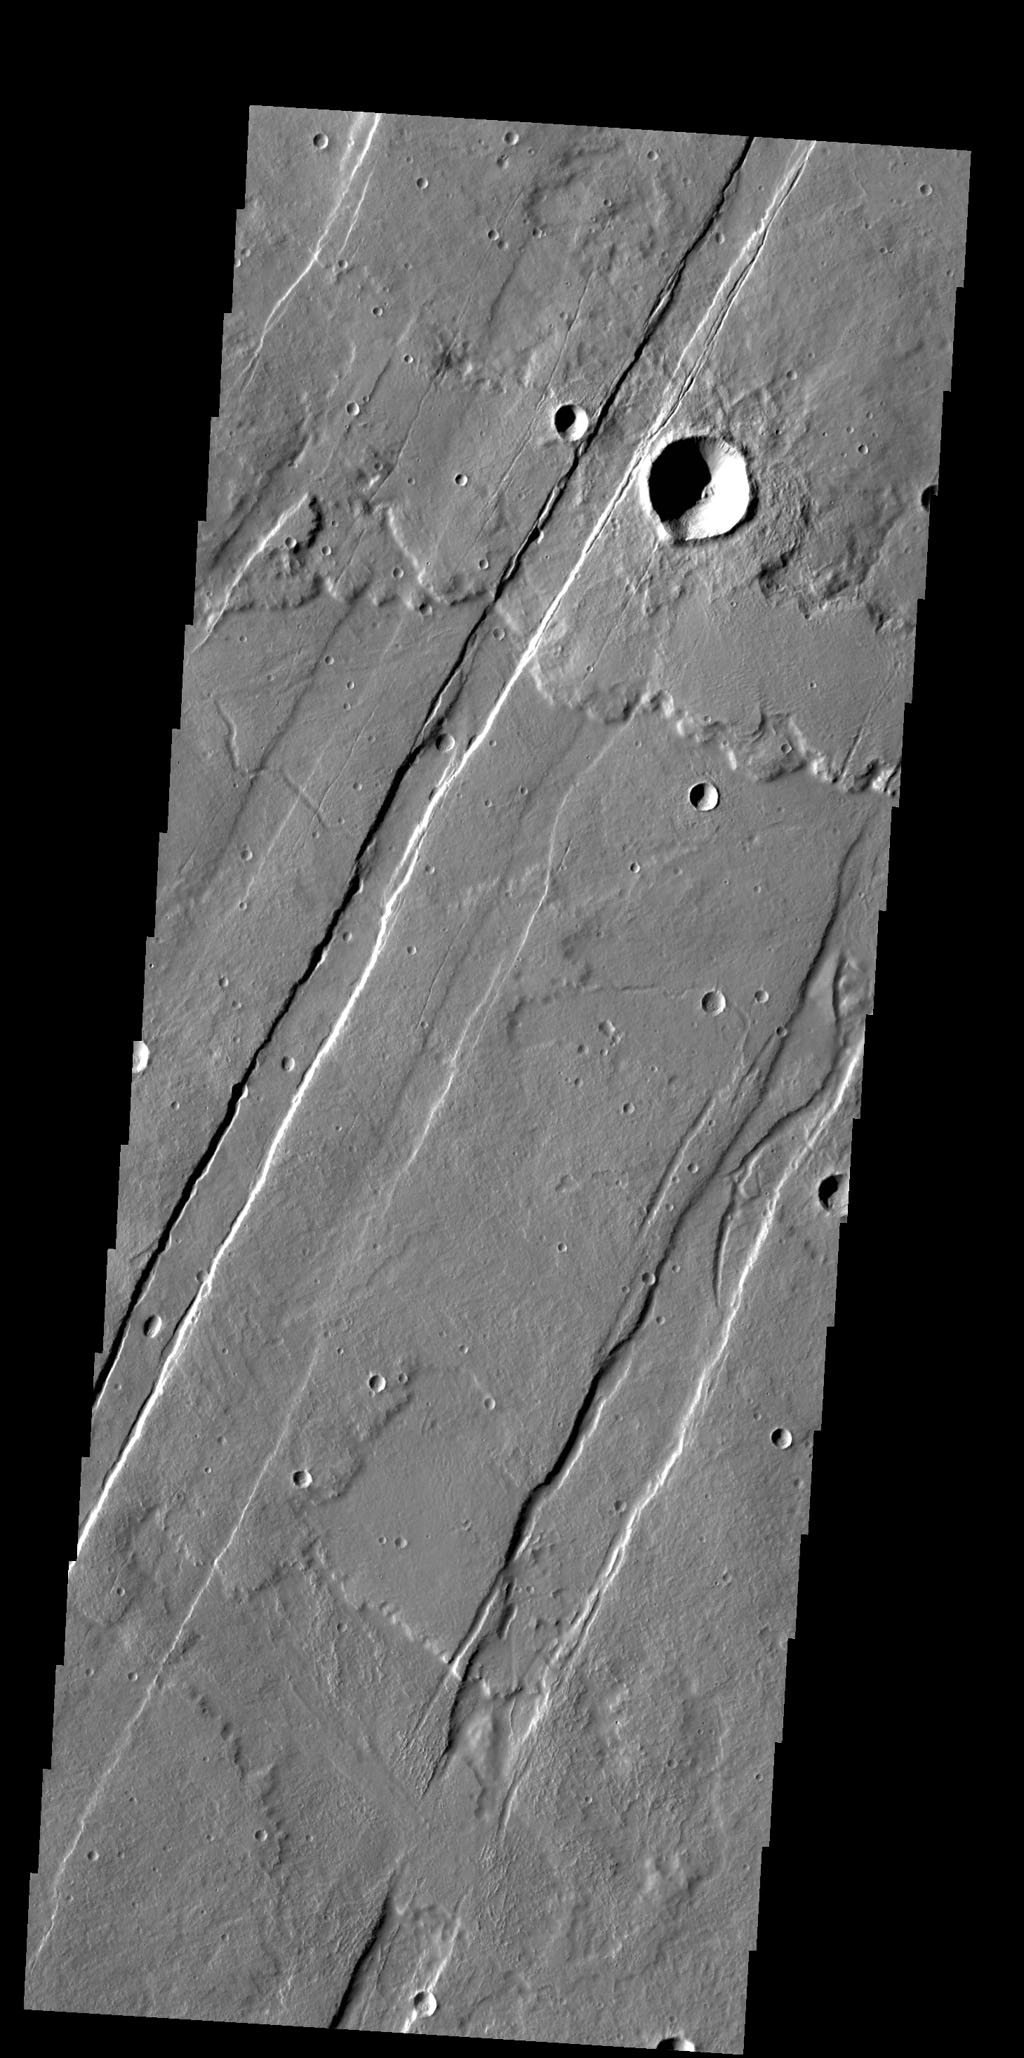 This image captured by NASA's 2001 Mars Odyssey spacecraft shows several of the graben (fault bounded depression) that are part of Acheron Catena.